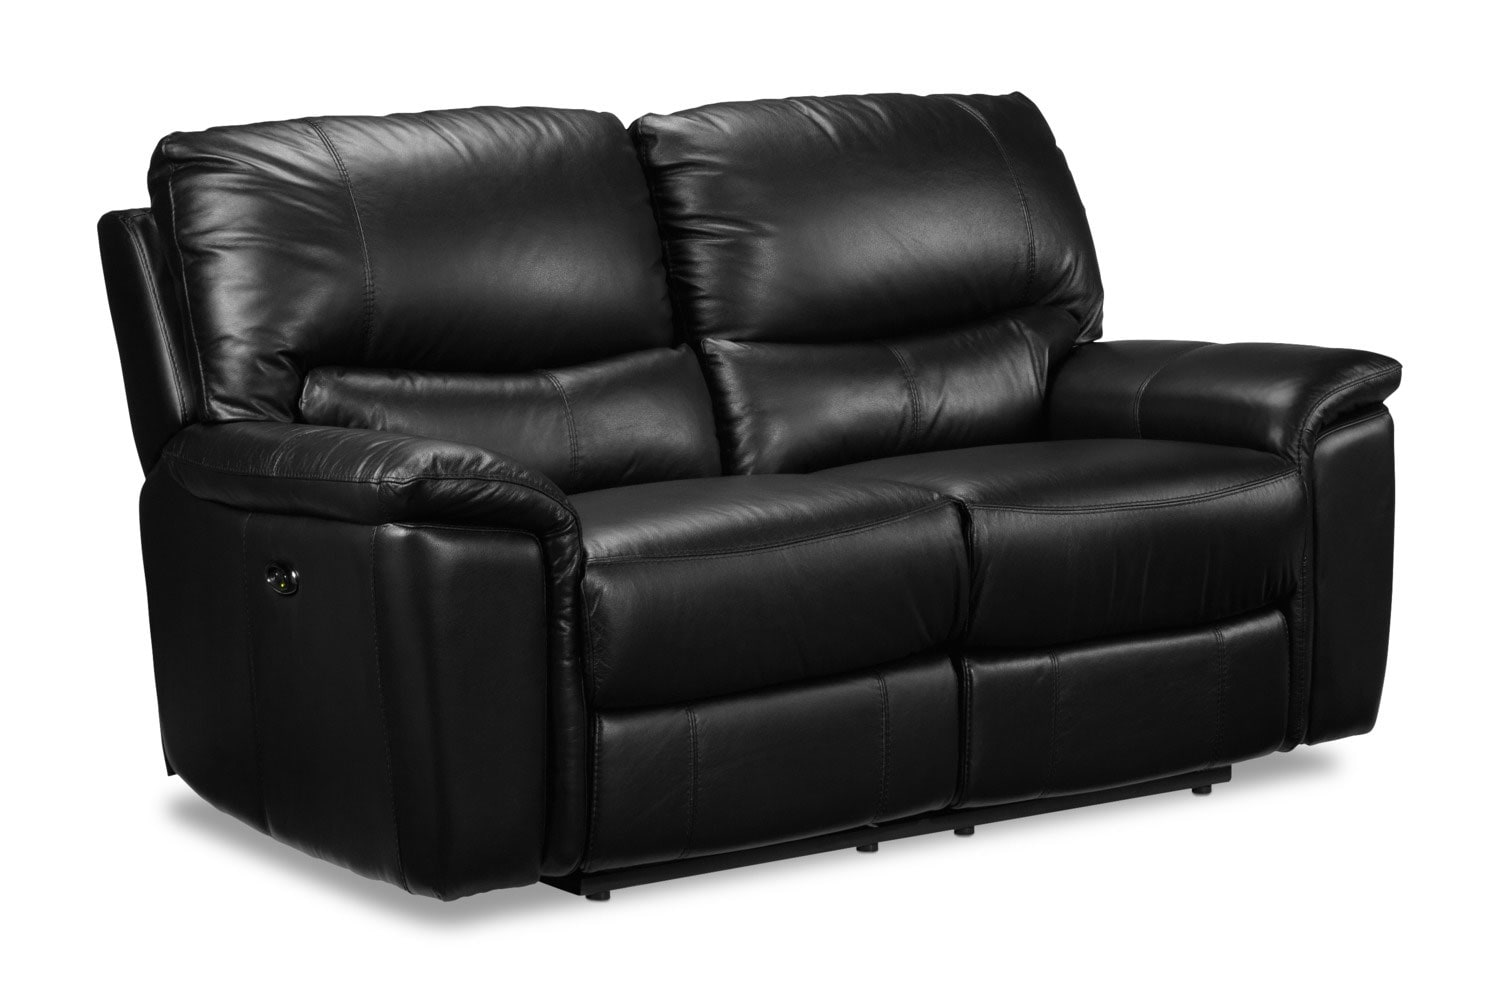 Nolan Power Reclining Loveseat - Black